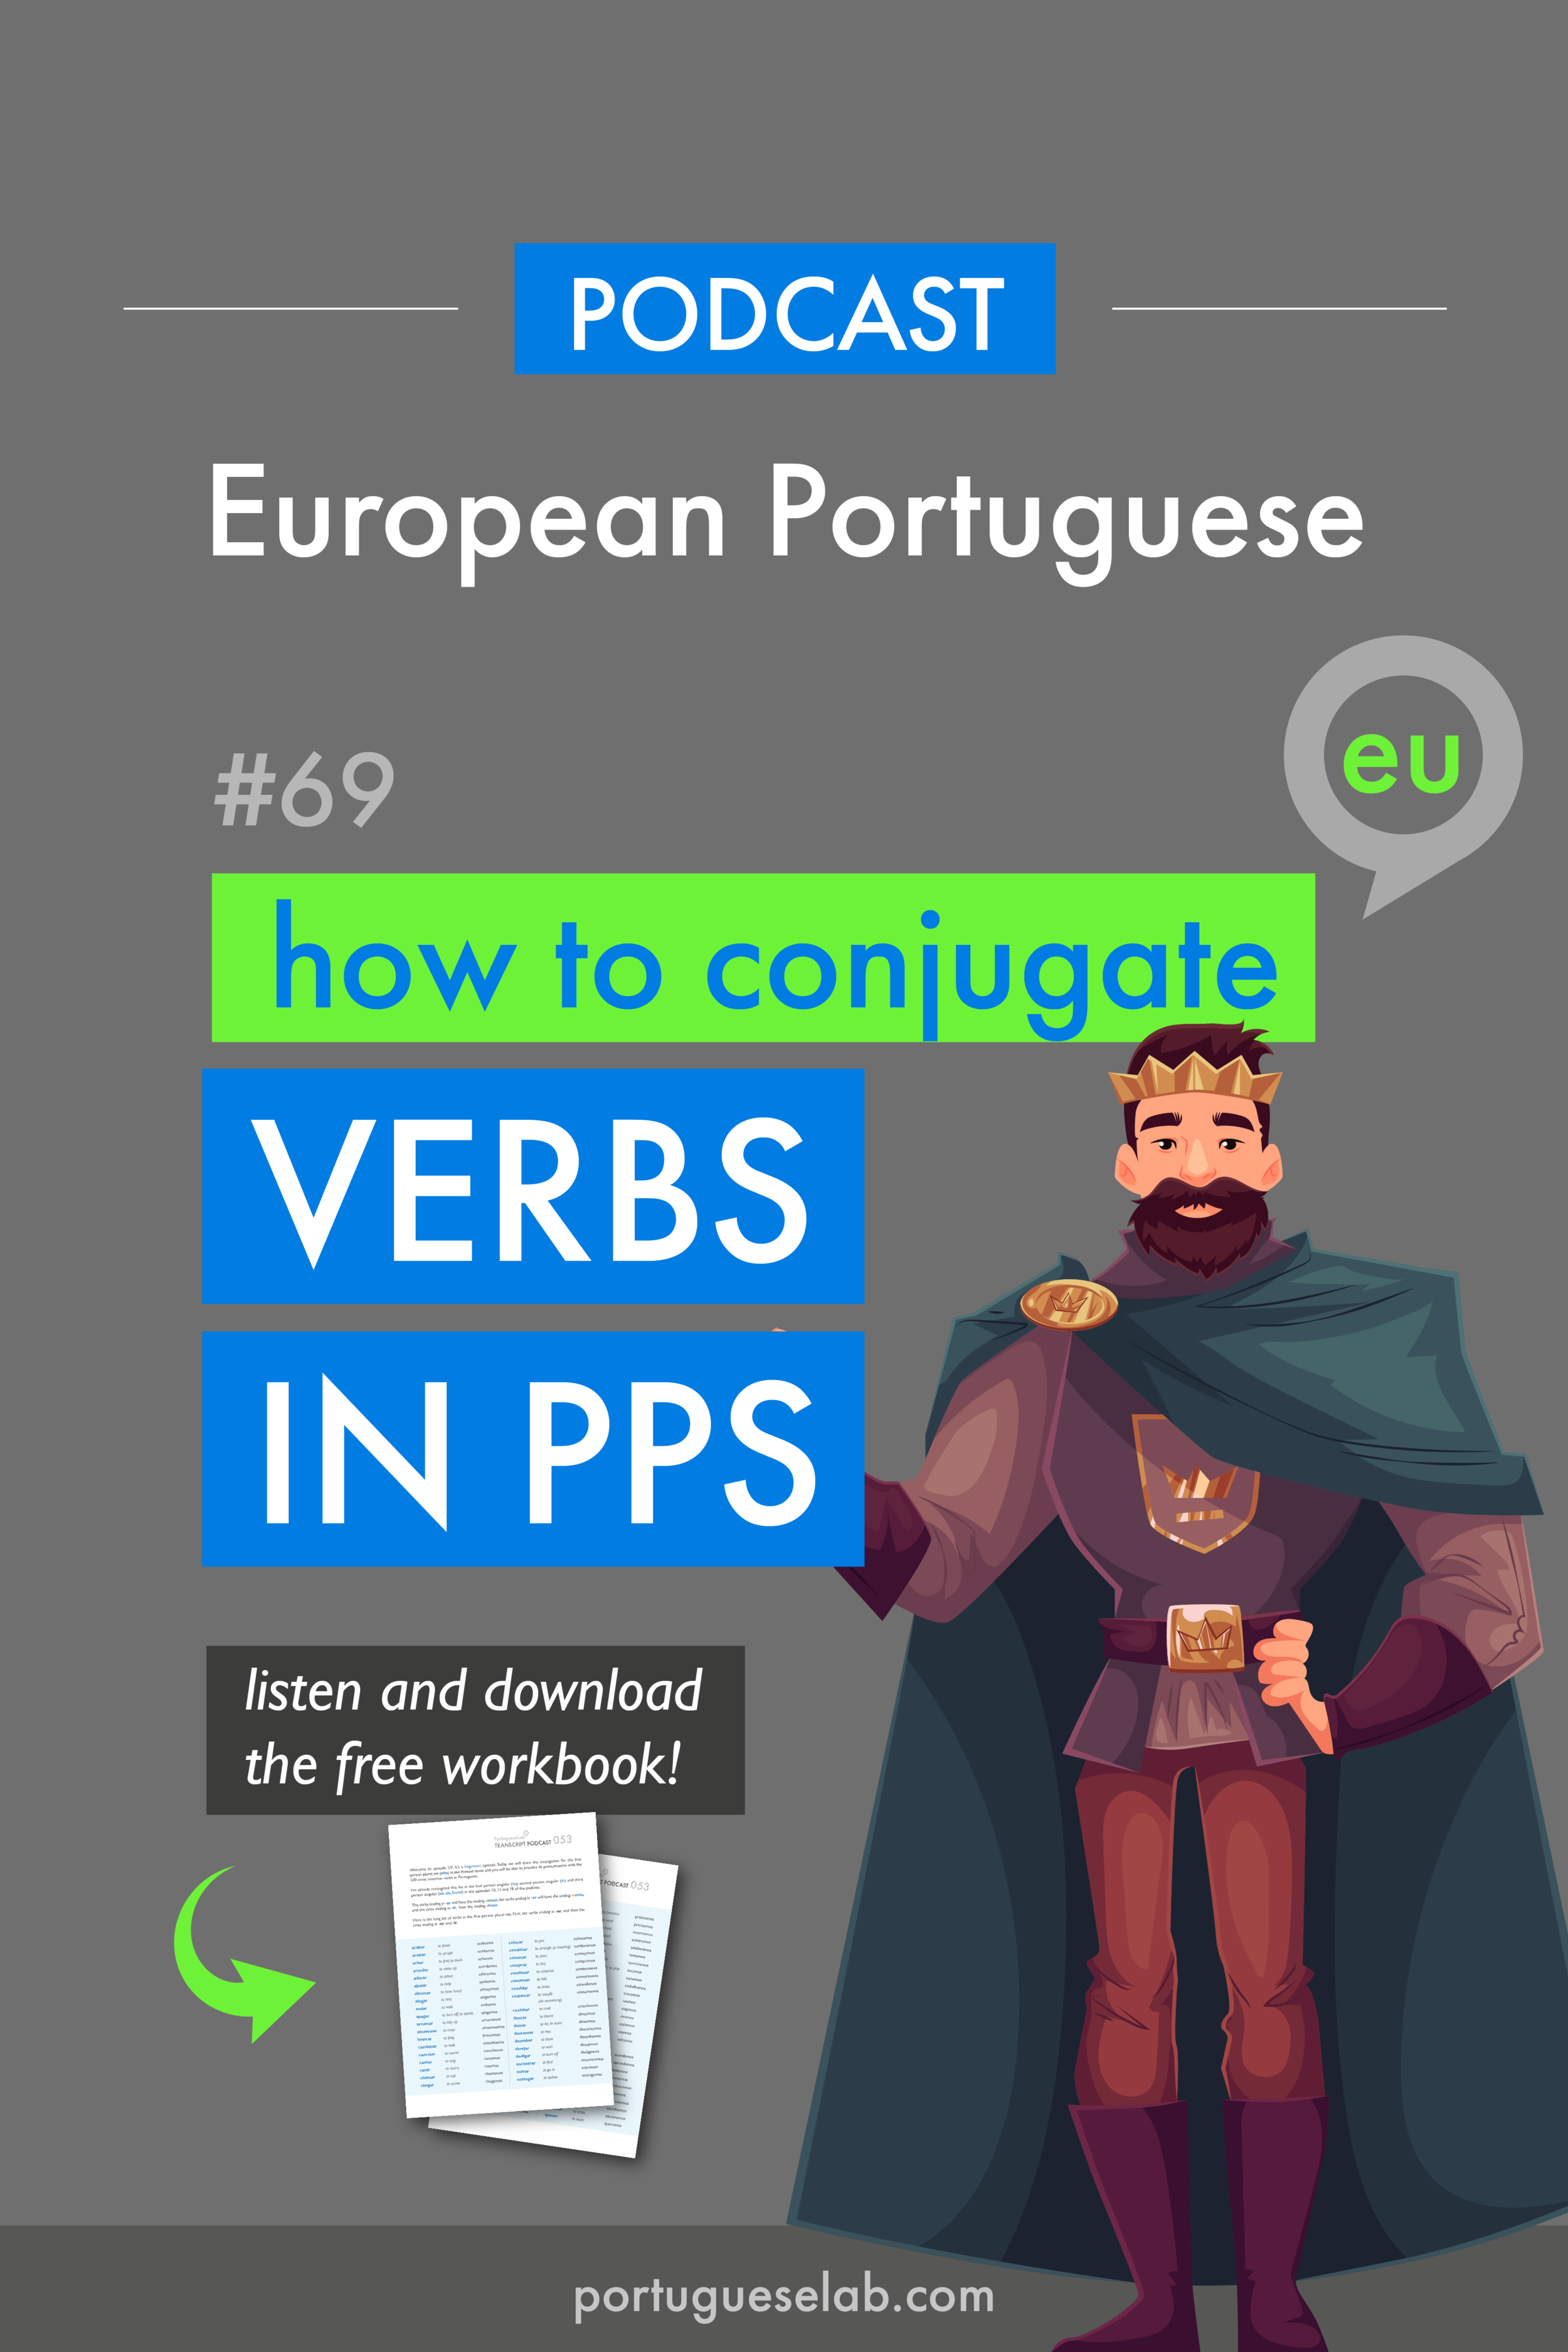 Portuguese Lab Podcast - European Portuguese - 69 - Verbs in the past - eu.png